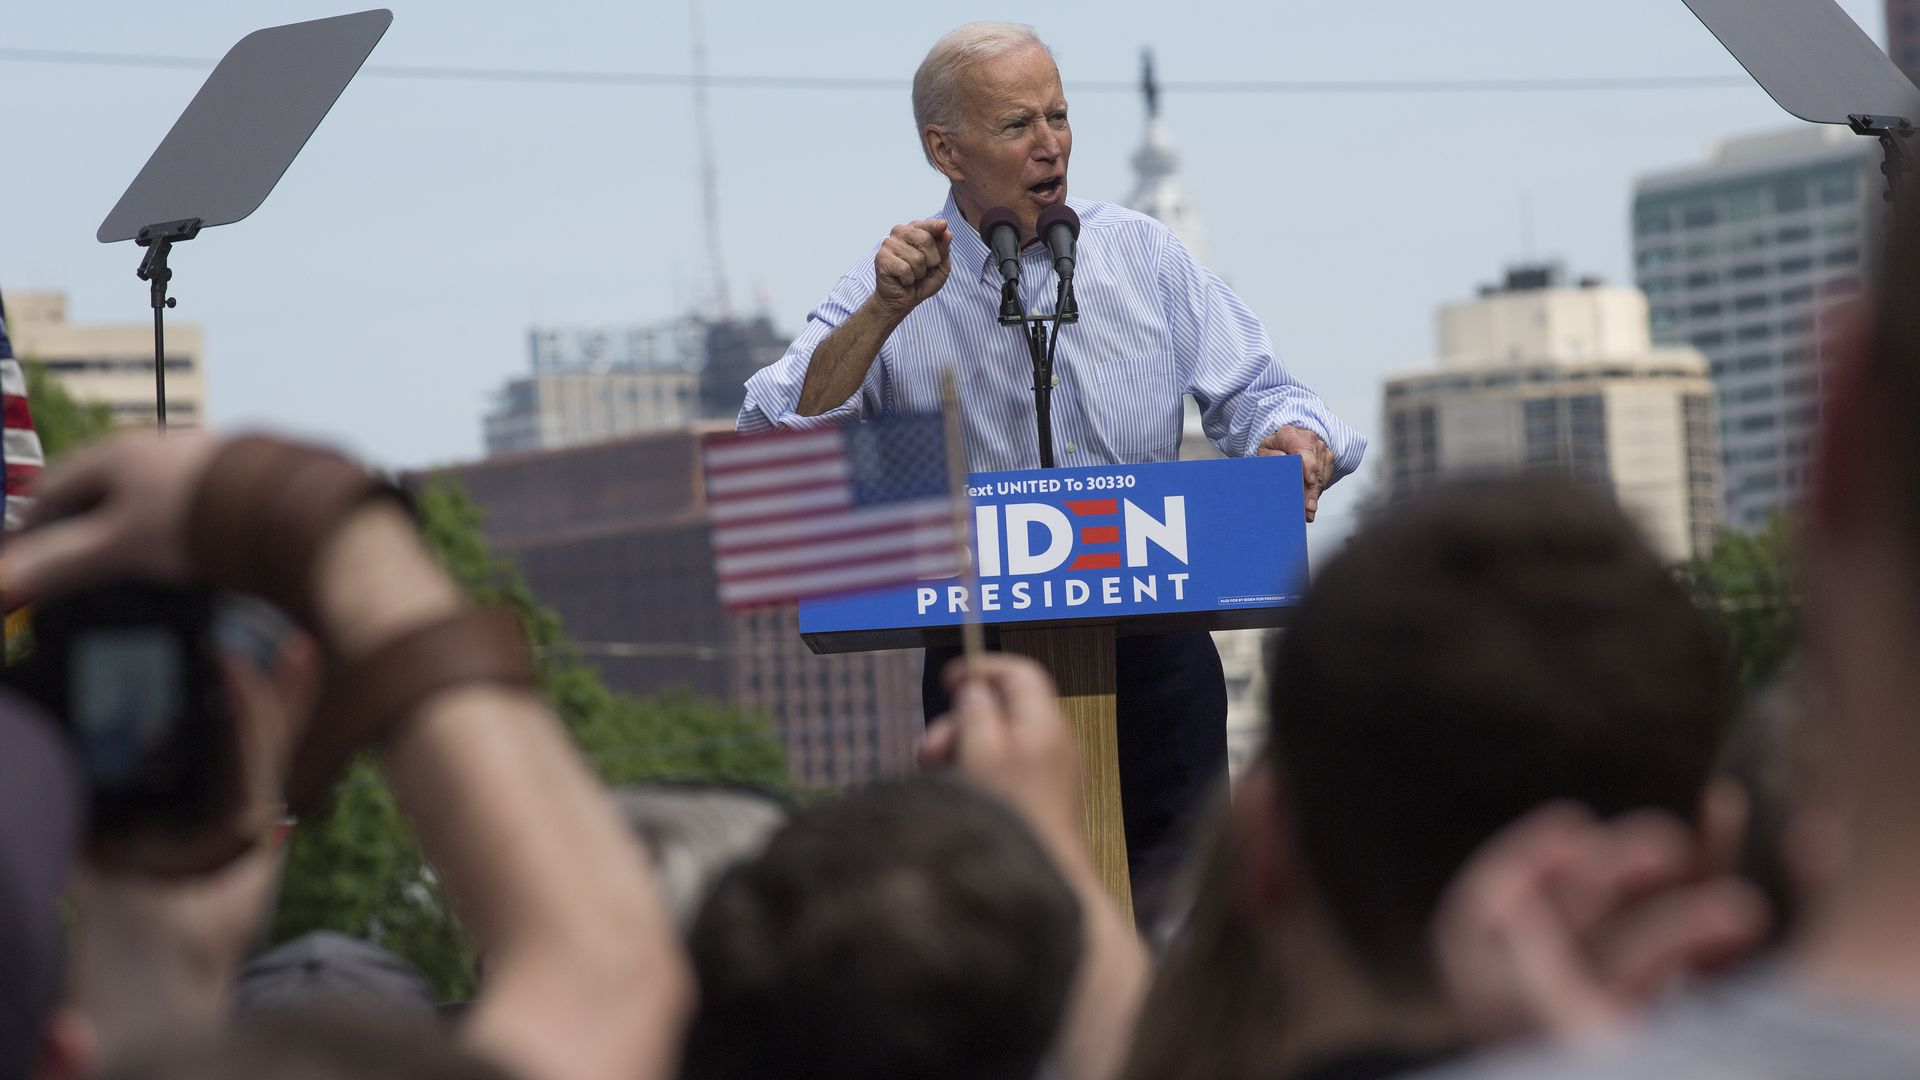 Former Vice President Joe Biden campaigns for president at a kickoff rally on March 18, 2019 in downtown Philadelphia, Pennsylvania.